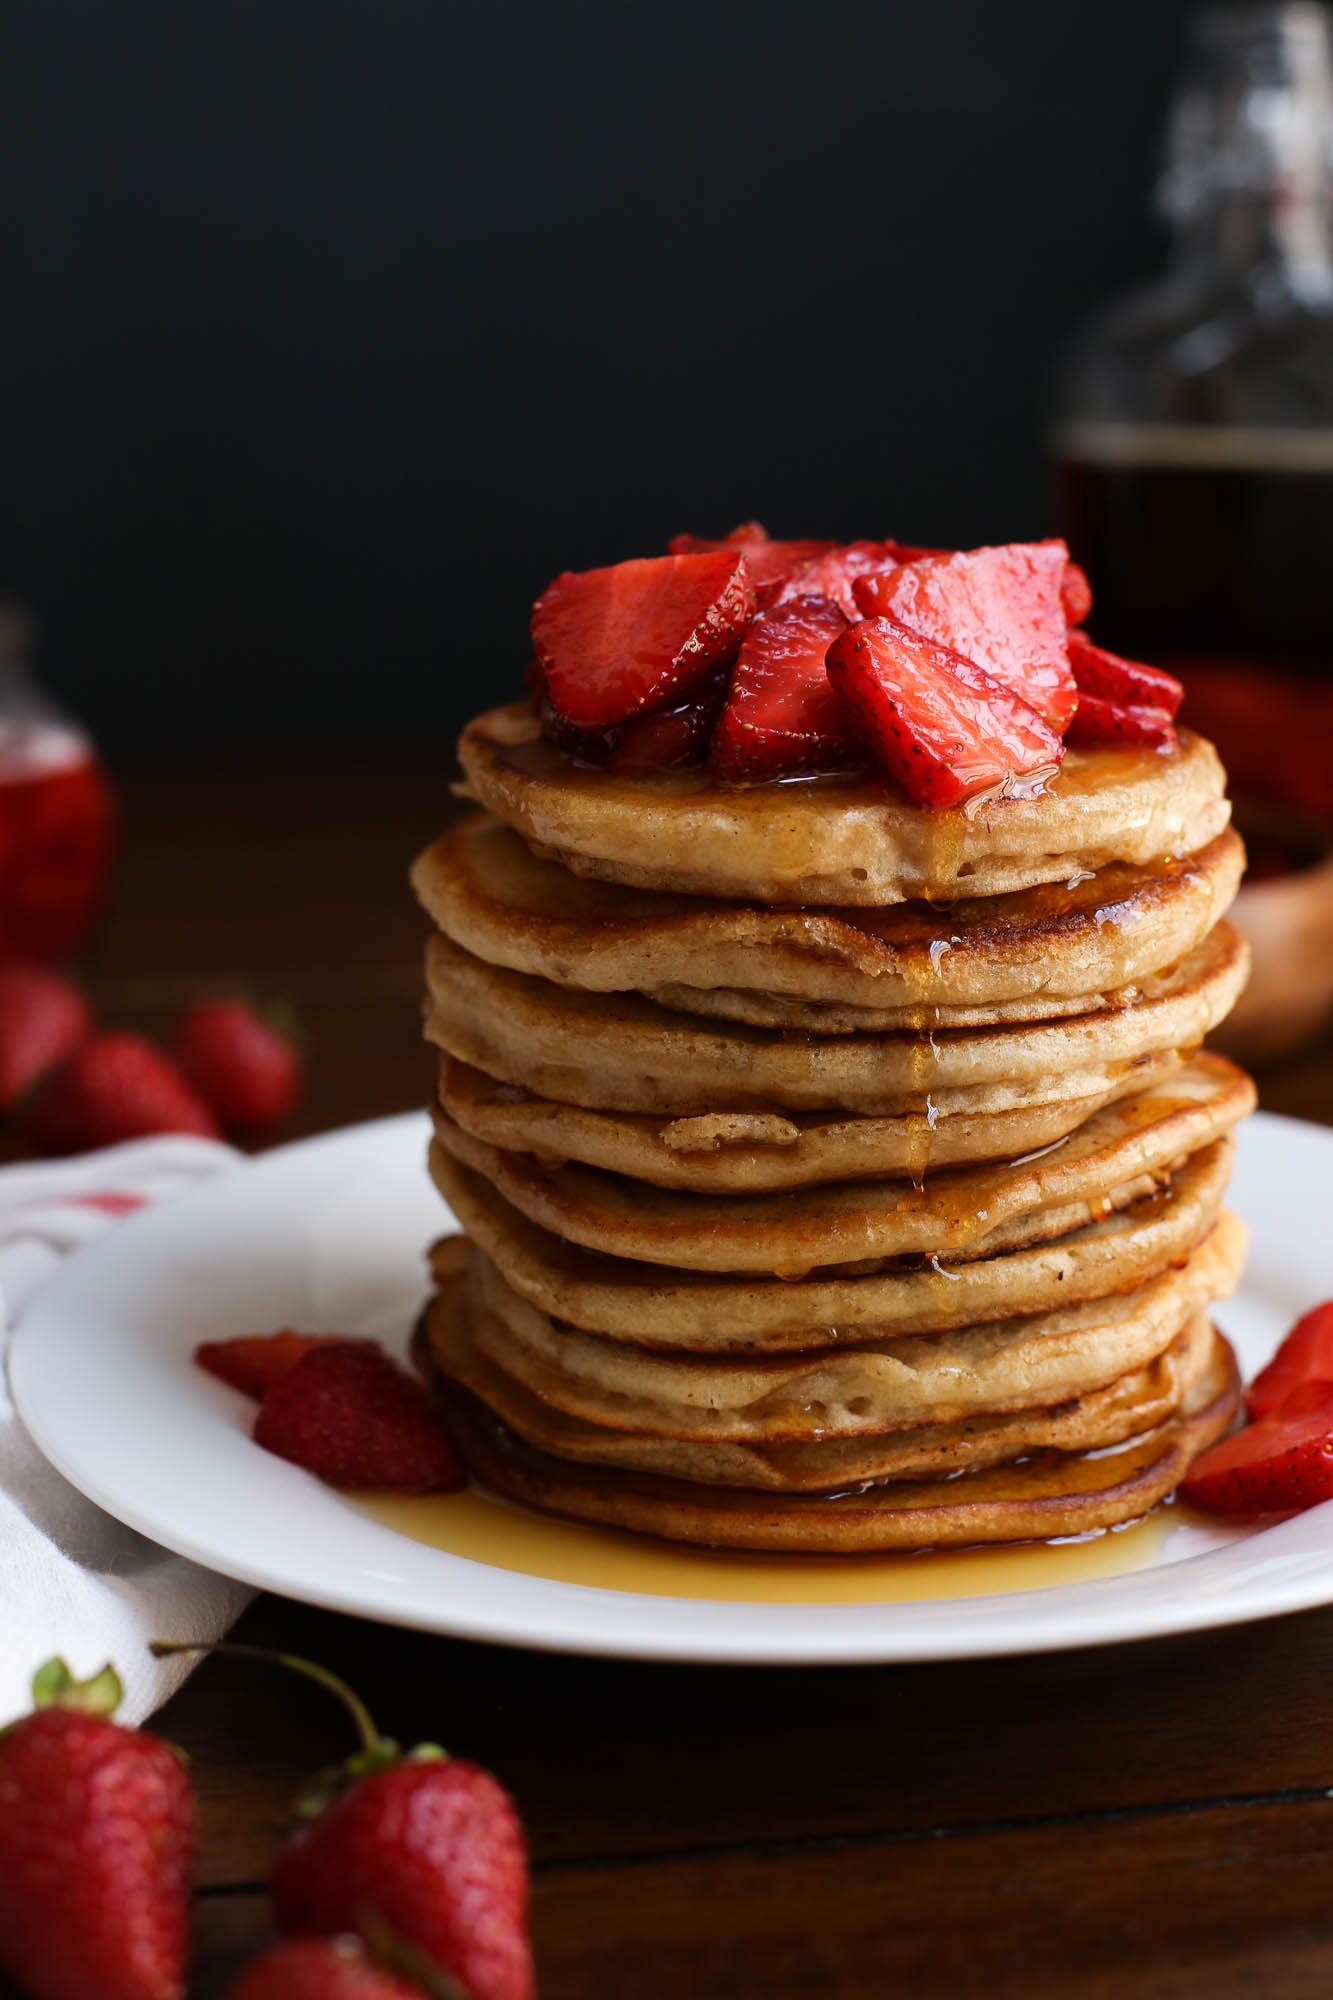 Easy Pancakes with Strawberry Syrup from The District Table